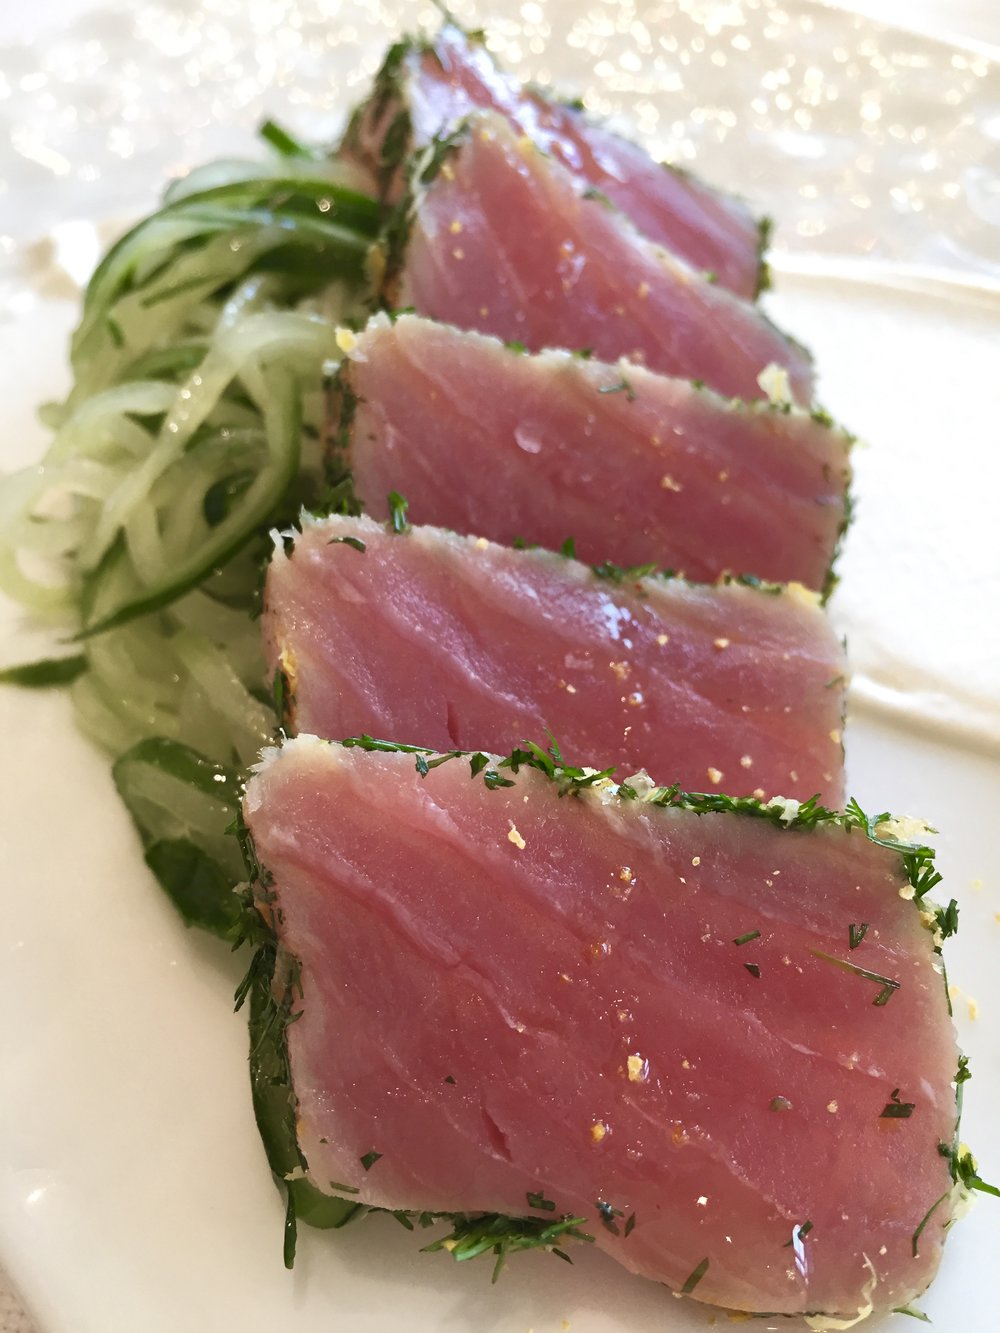 Marinated tuna, citrus, coriander, sweet pimento